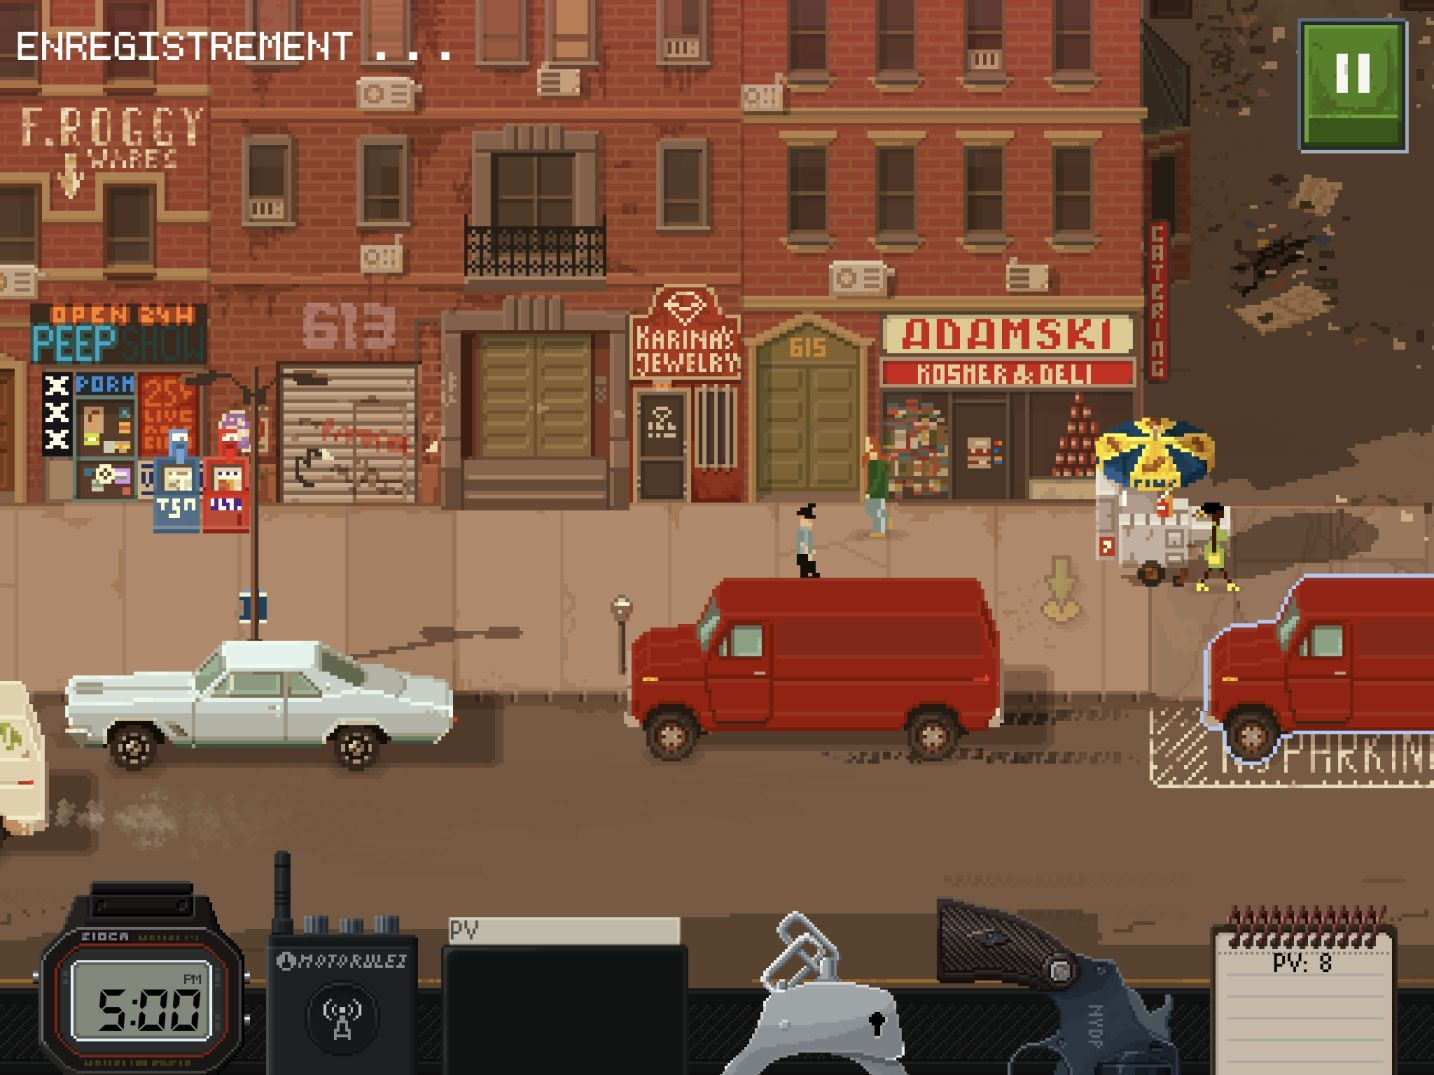 Beat Cop (copie d'écran 11 sur iPhone / iPad)